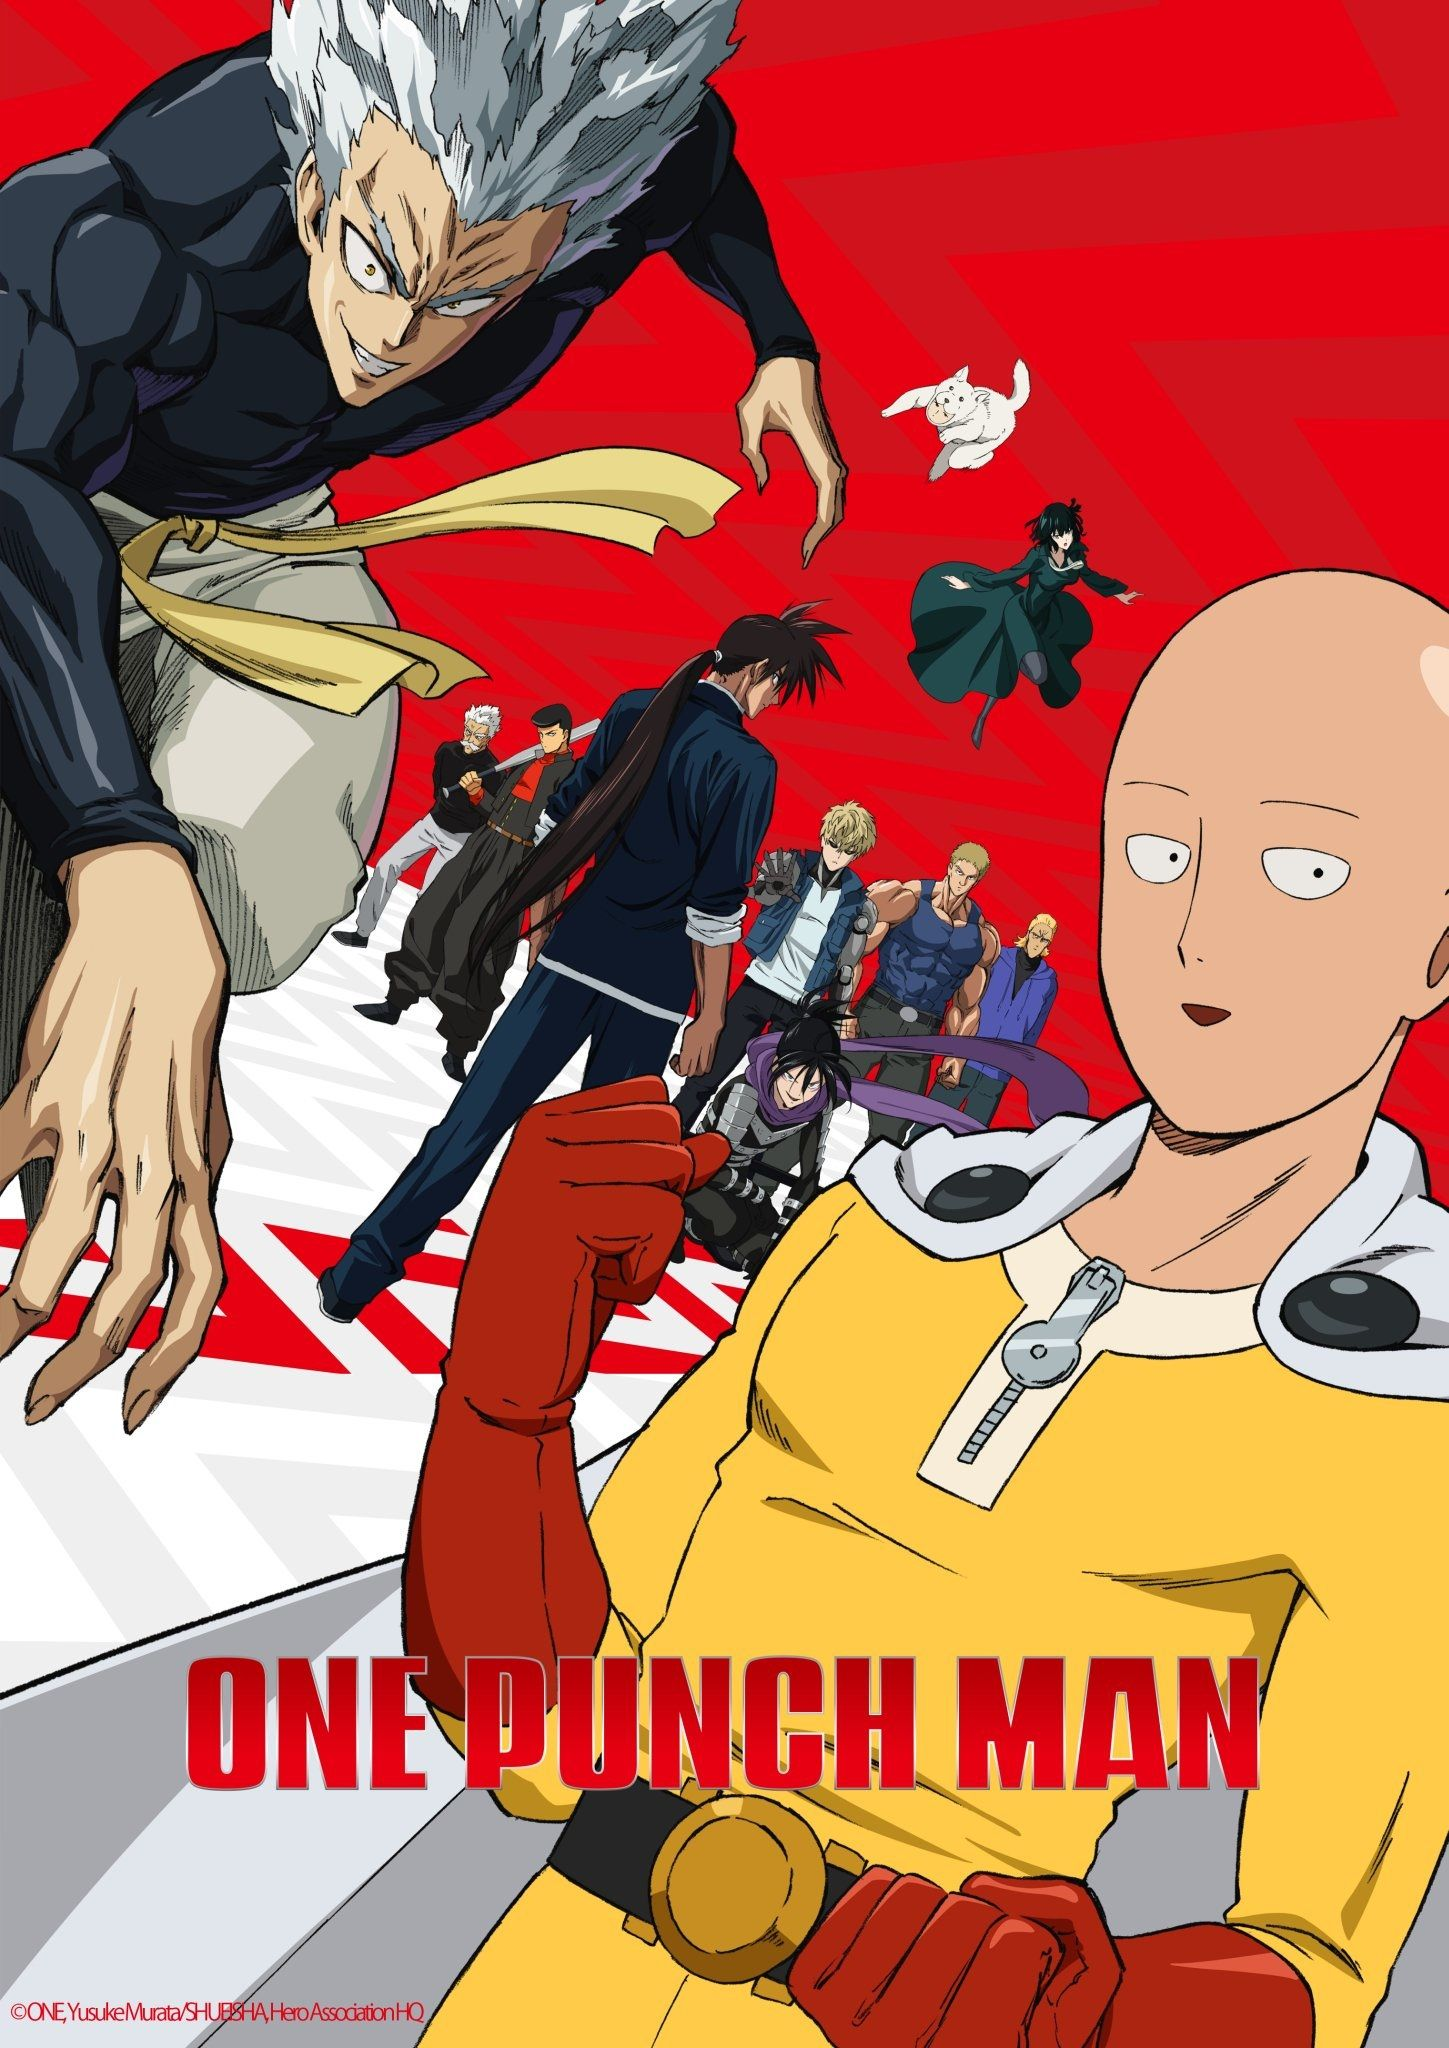 Day 205 One Punch Man Season 2 I Loved This Season I Love The Characters New And Old The Plot Is Still One Punch Man Anime One Punch Man 2 One Punch Man